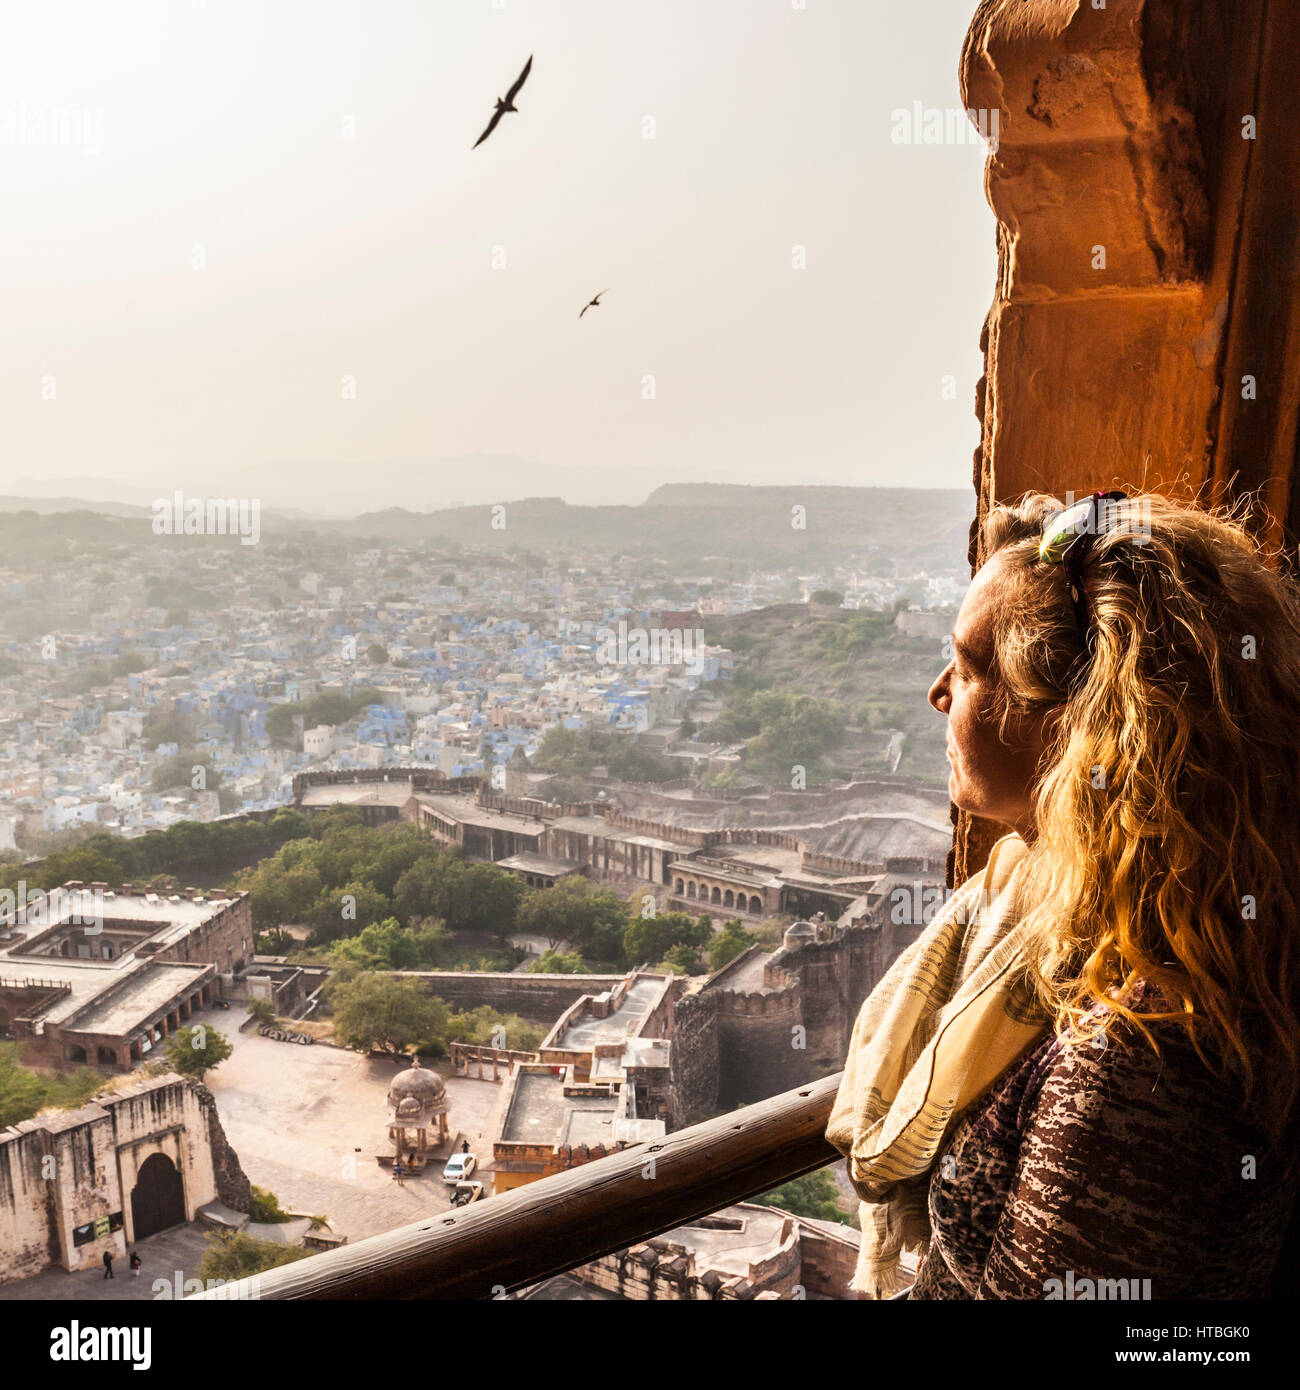 A woman looks out over the city of Jodhpur from a window high in Mehrangarh Fort. Rajasthan, India. - Stock Image